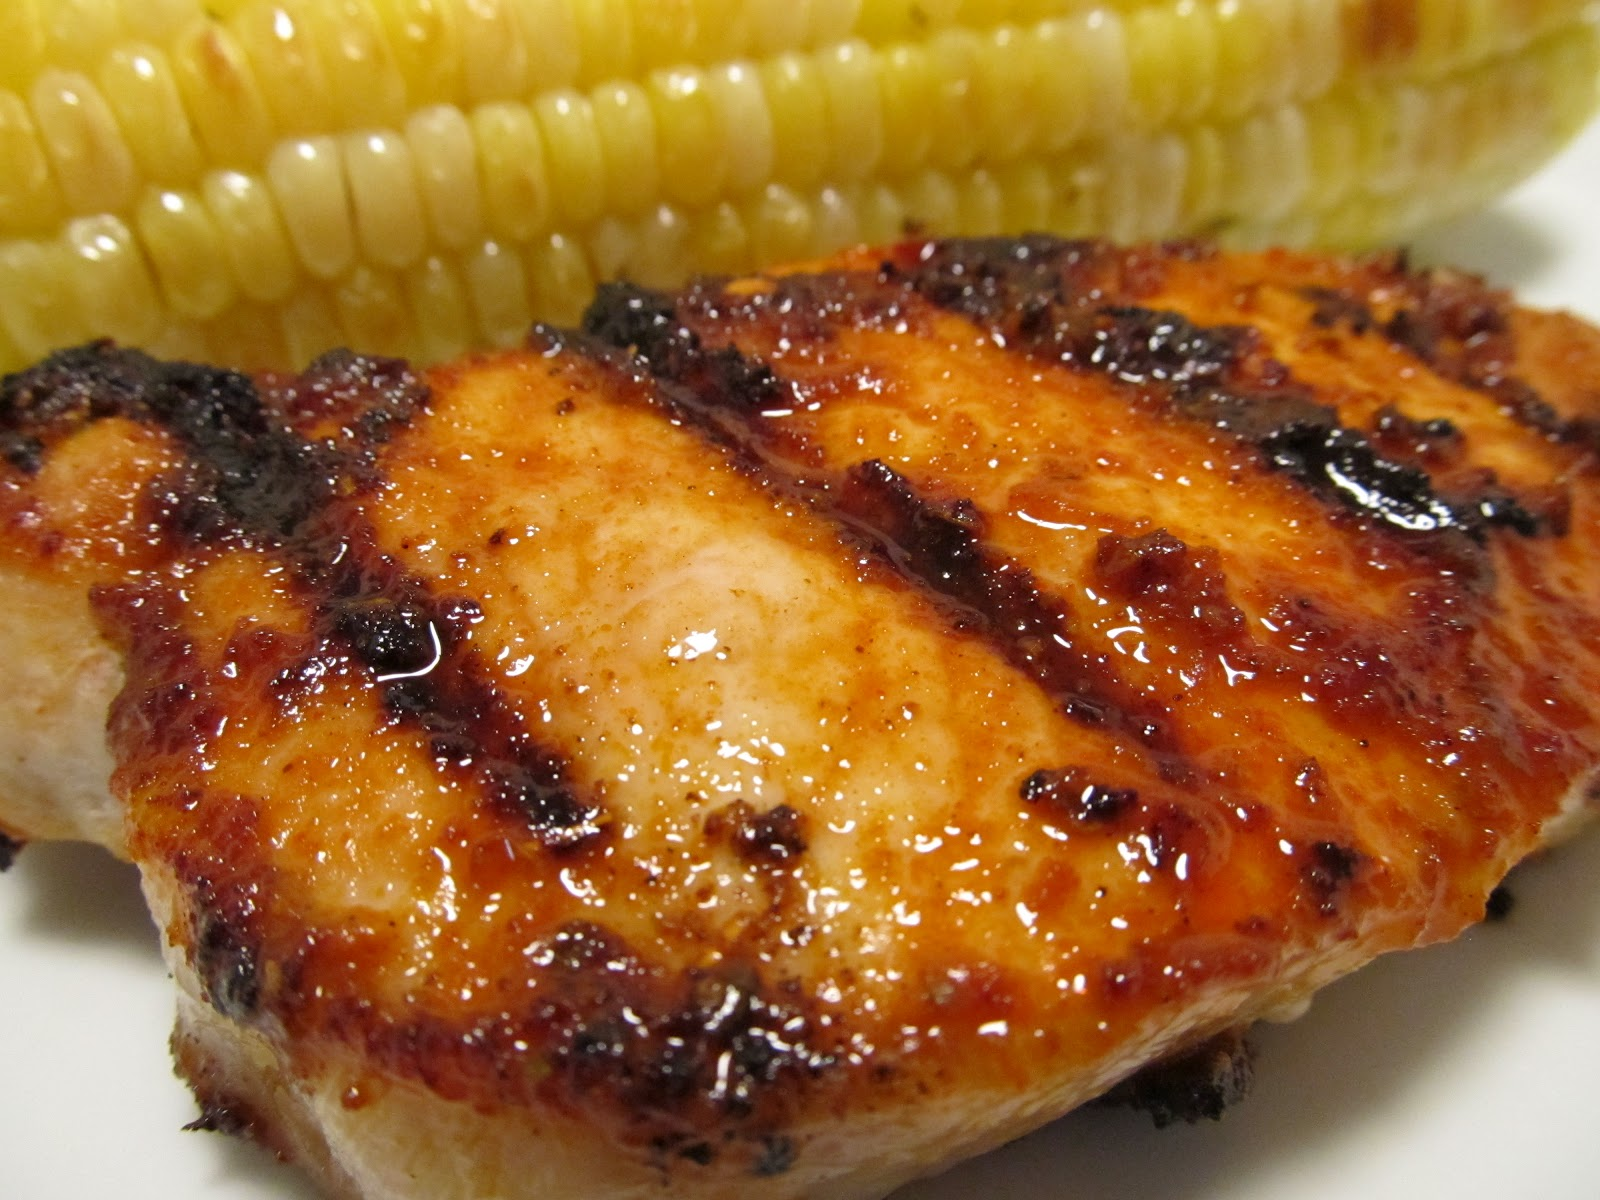 Grilled Pork Chops with Adobo Paste